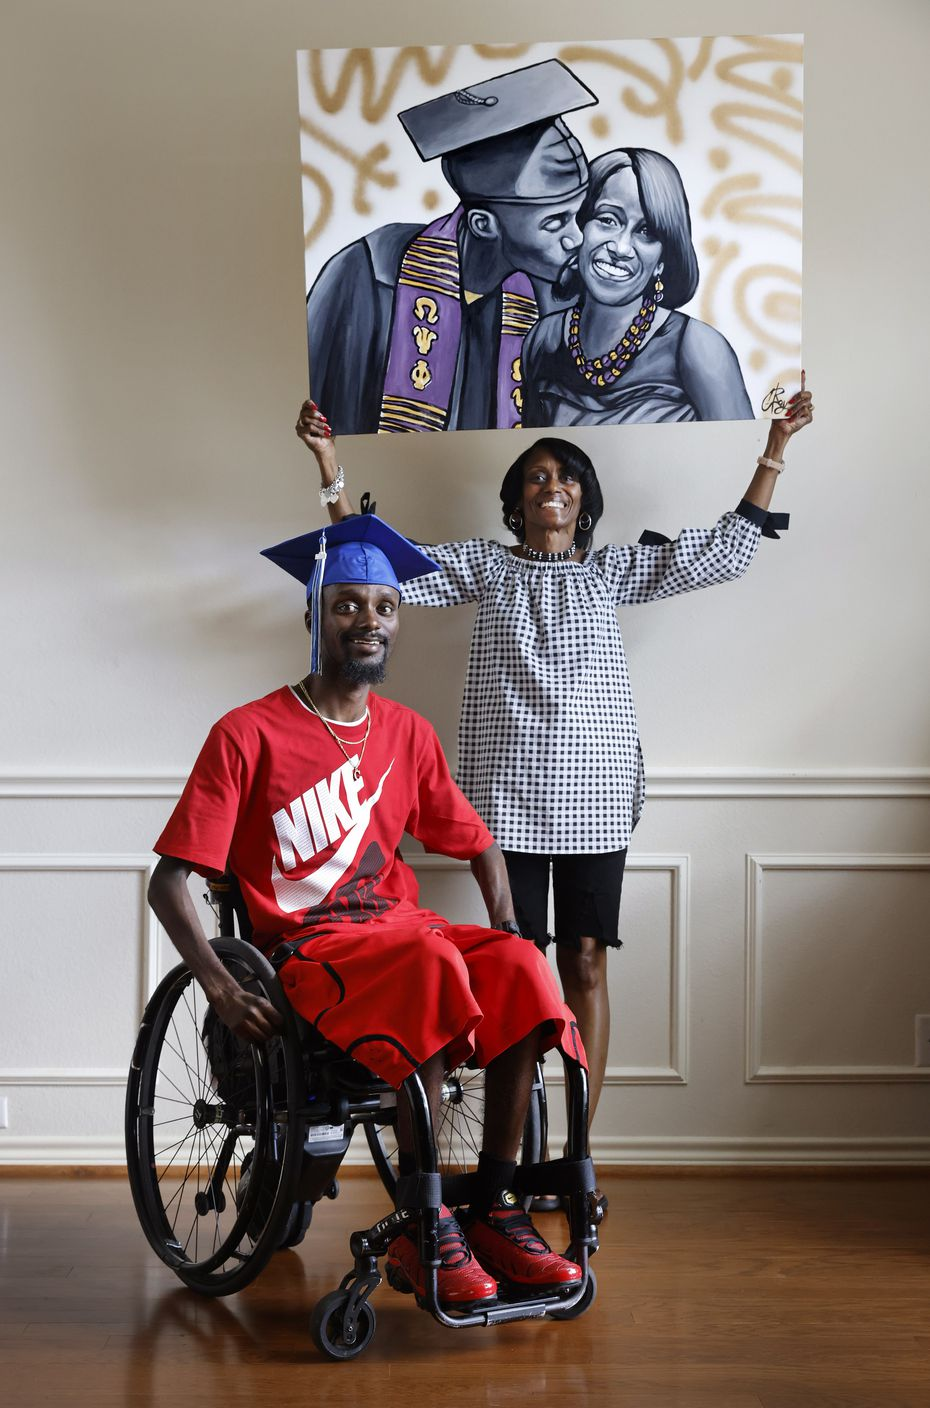 Charlotte Borner holds a graduation painting by artist Chris Rayson of her with son Corey Borner at their DeSoto home on Sept. 16, 2021.